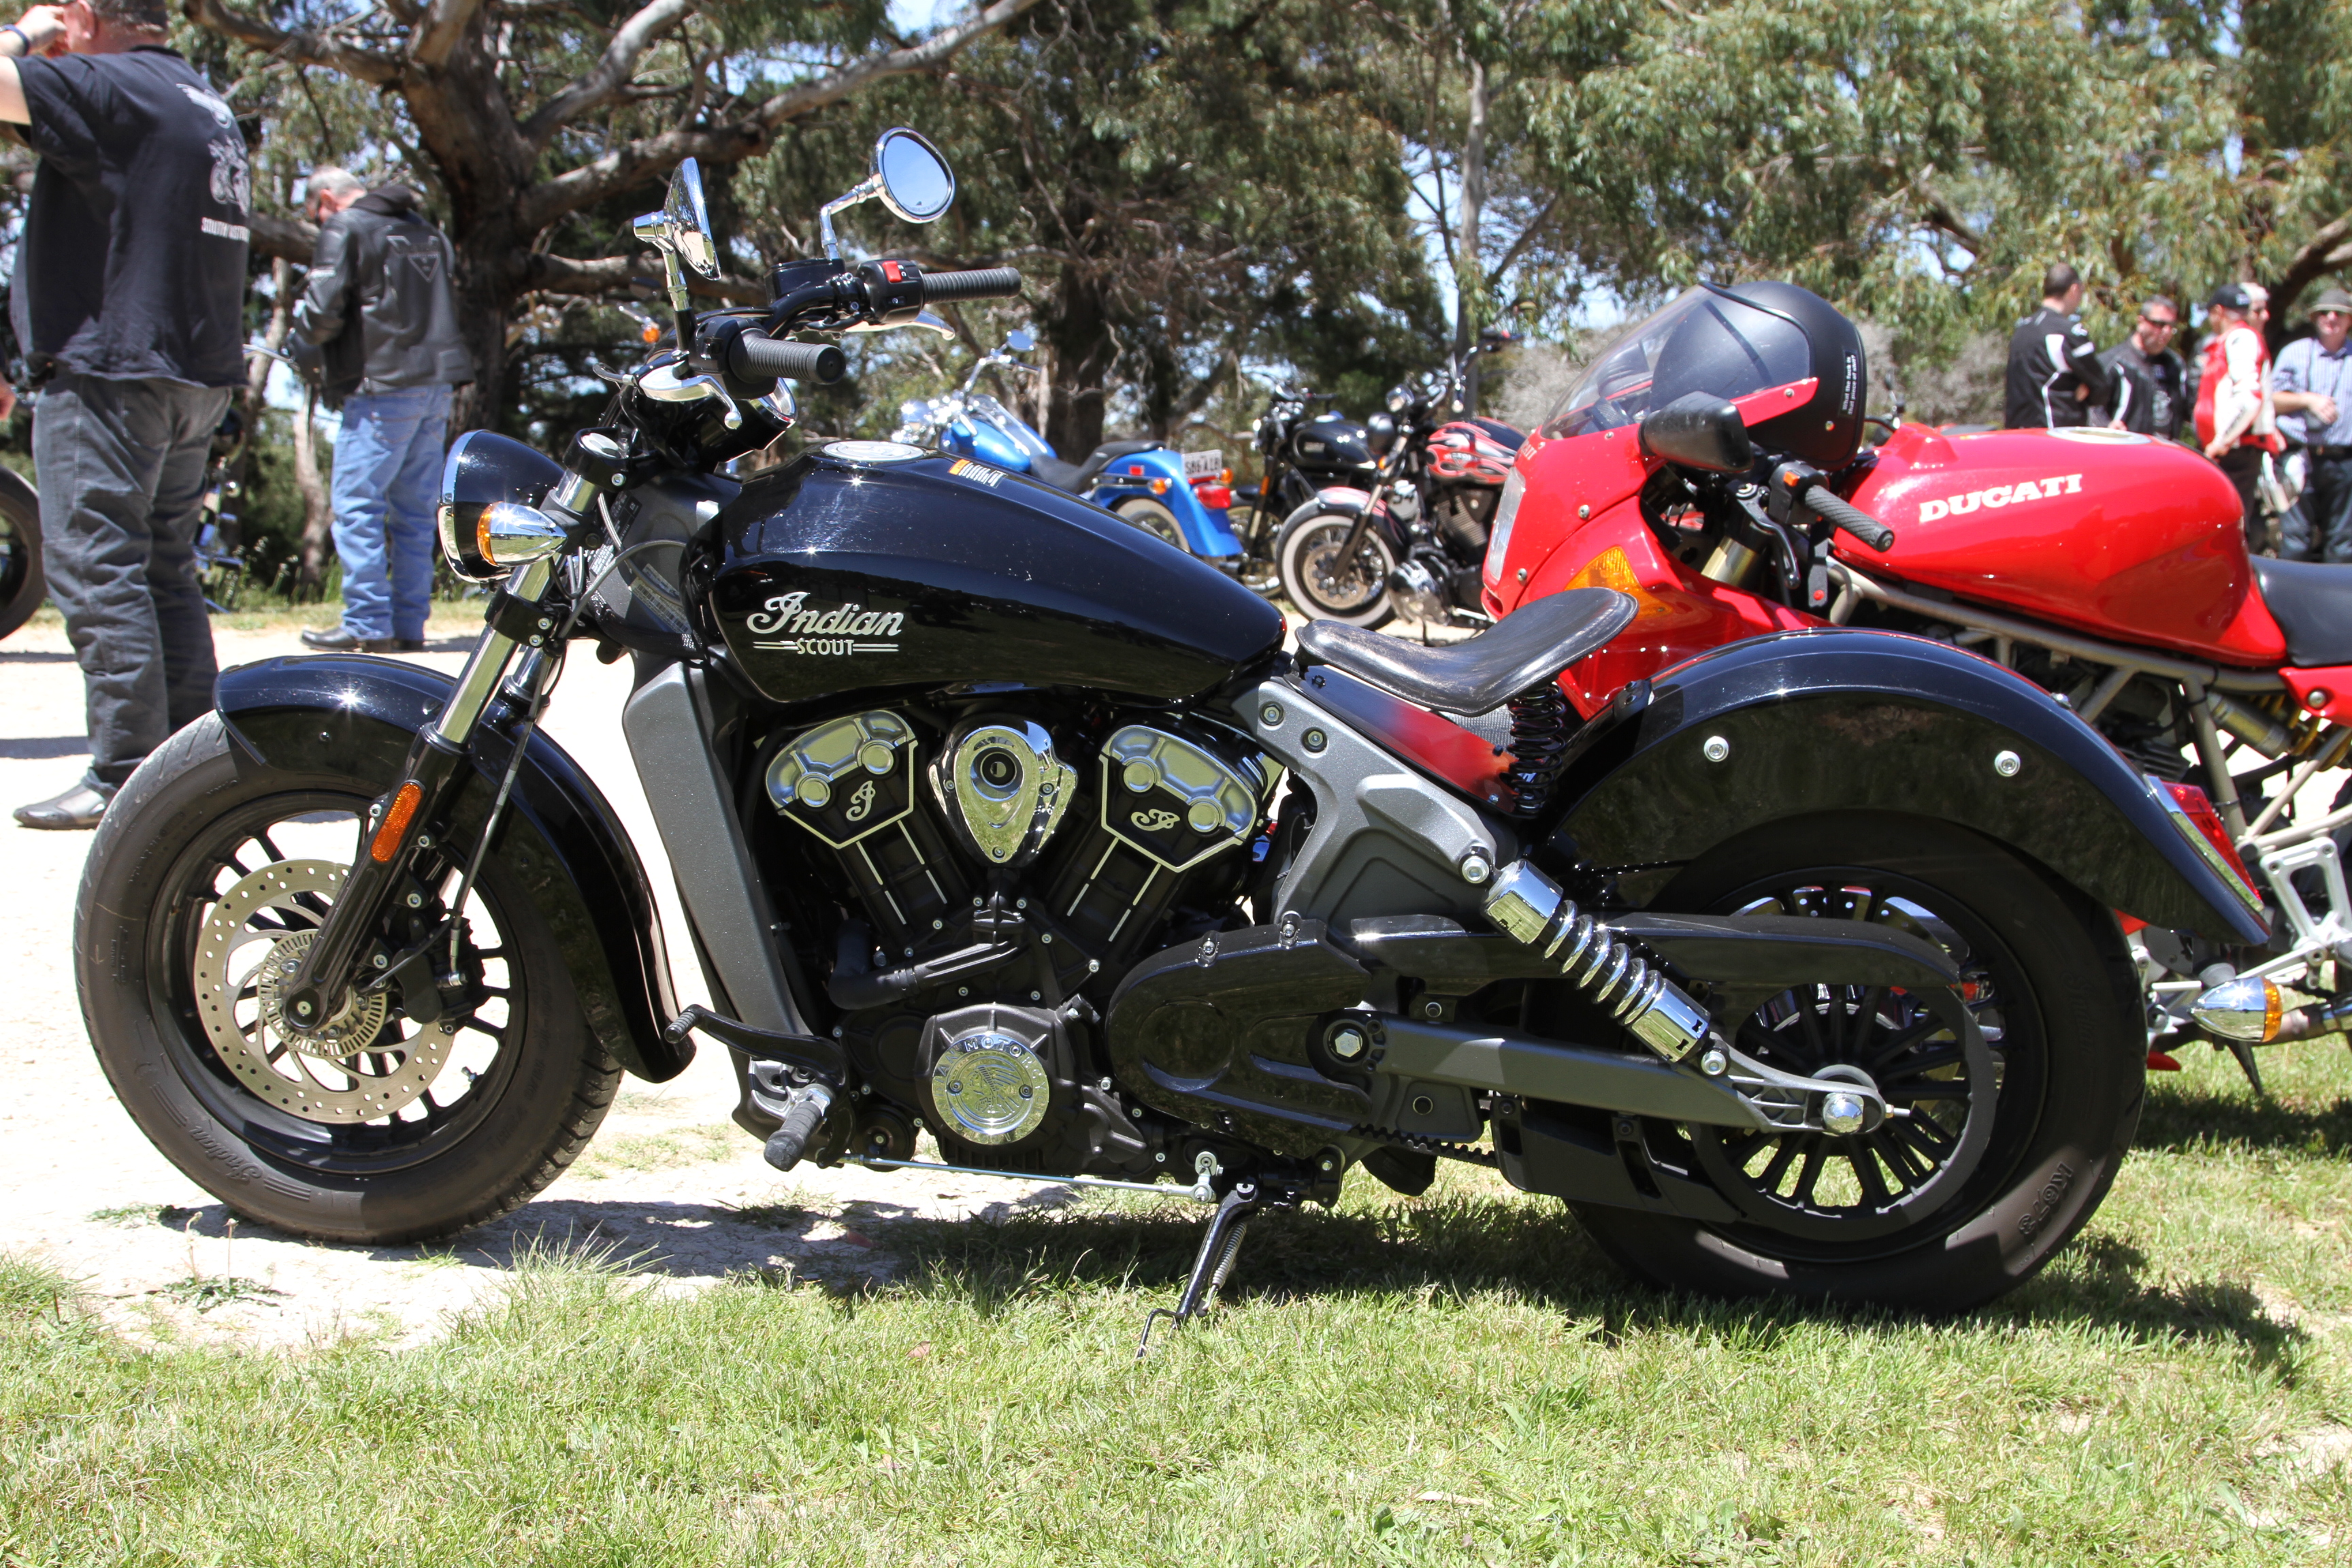 Indian Motorcycle at Event